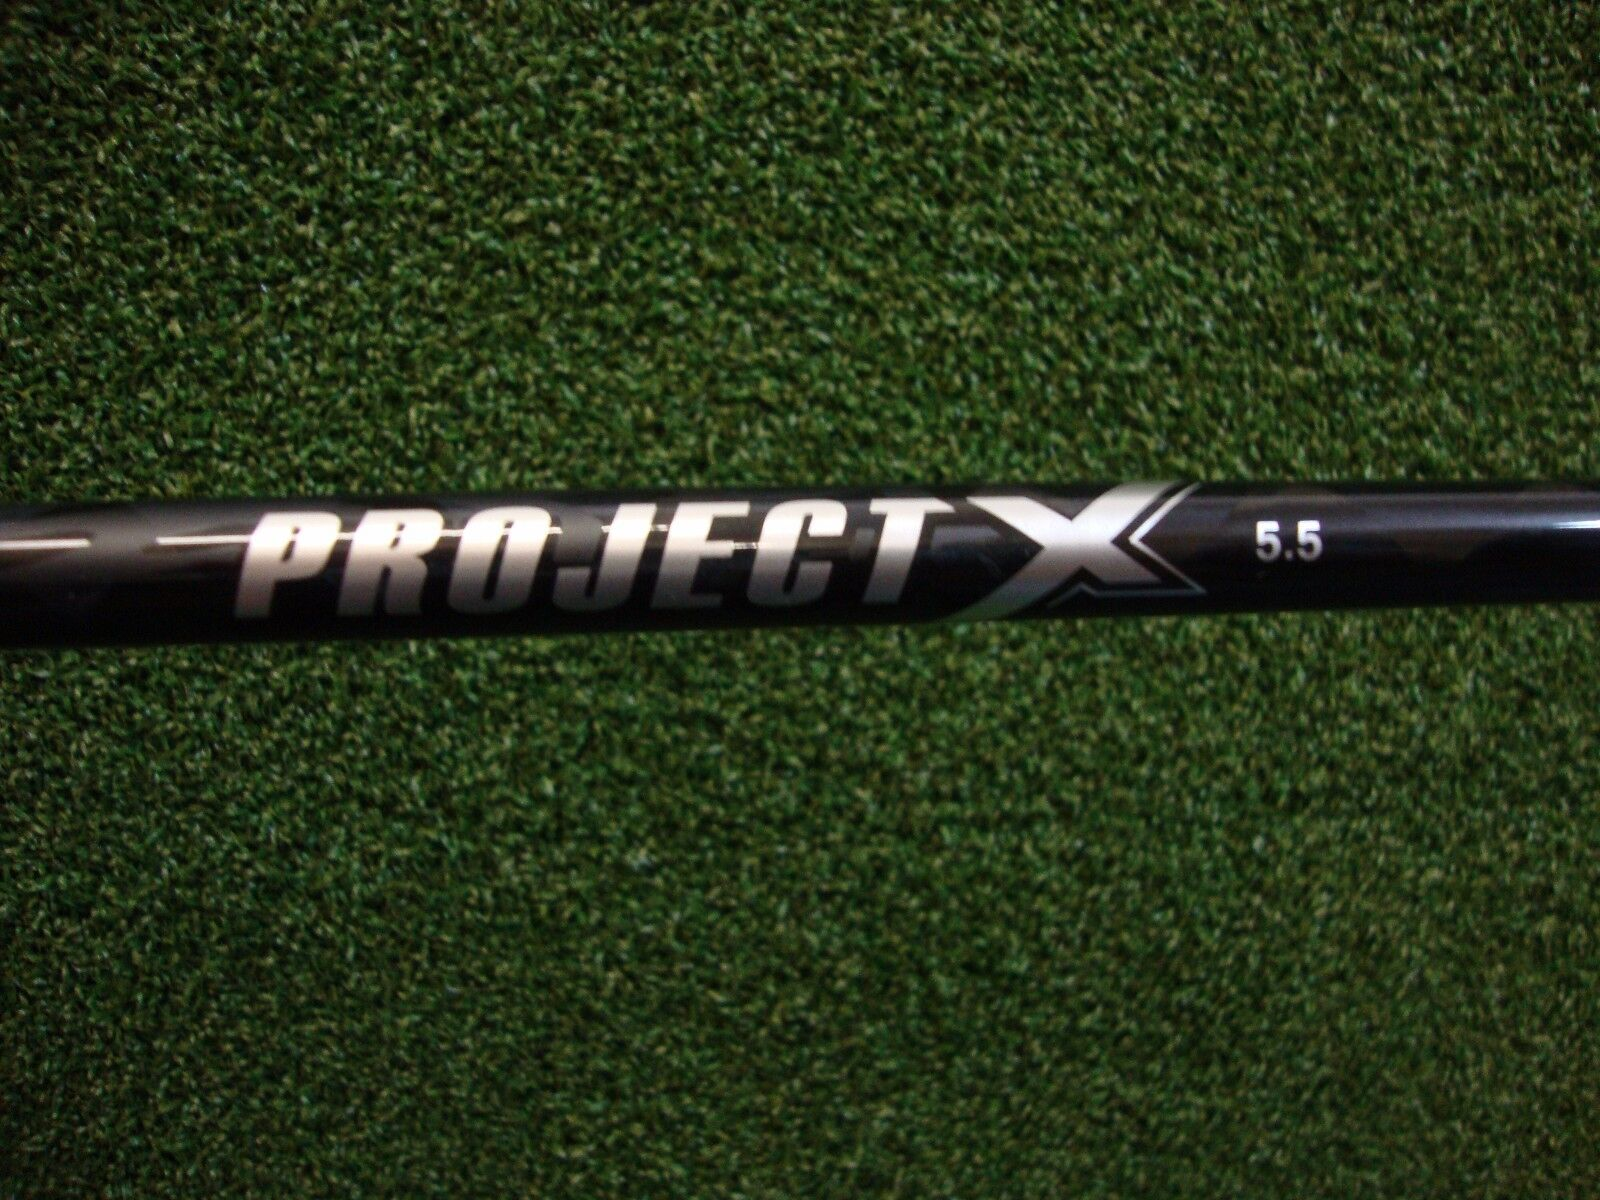 Project x 5.5 Firm Grafite Driver Shaft & Adattatore Titleist 910 913 915 917